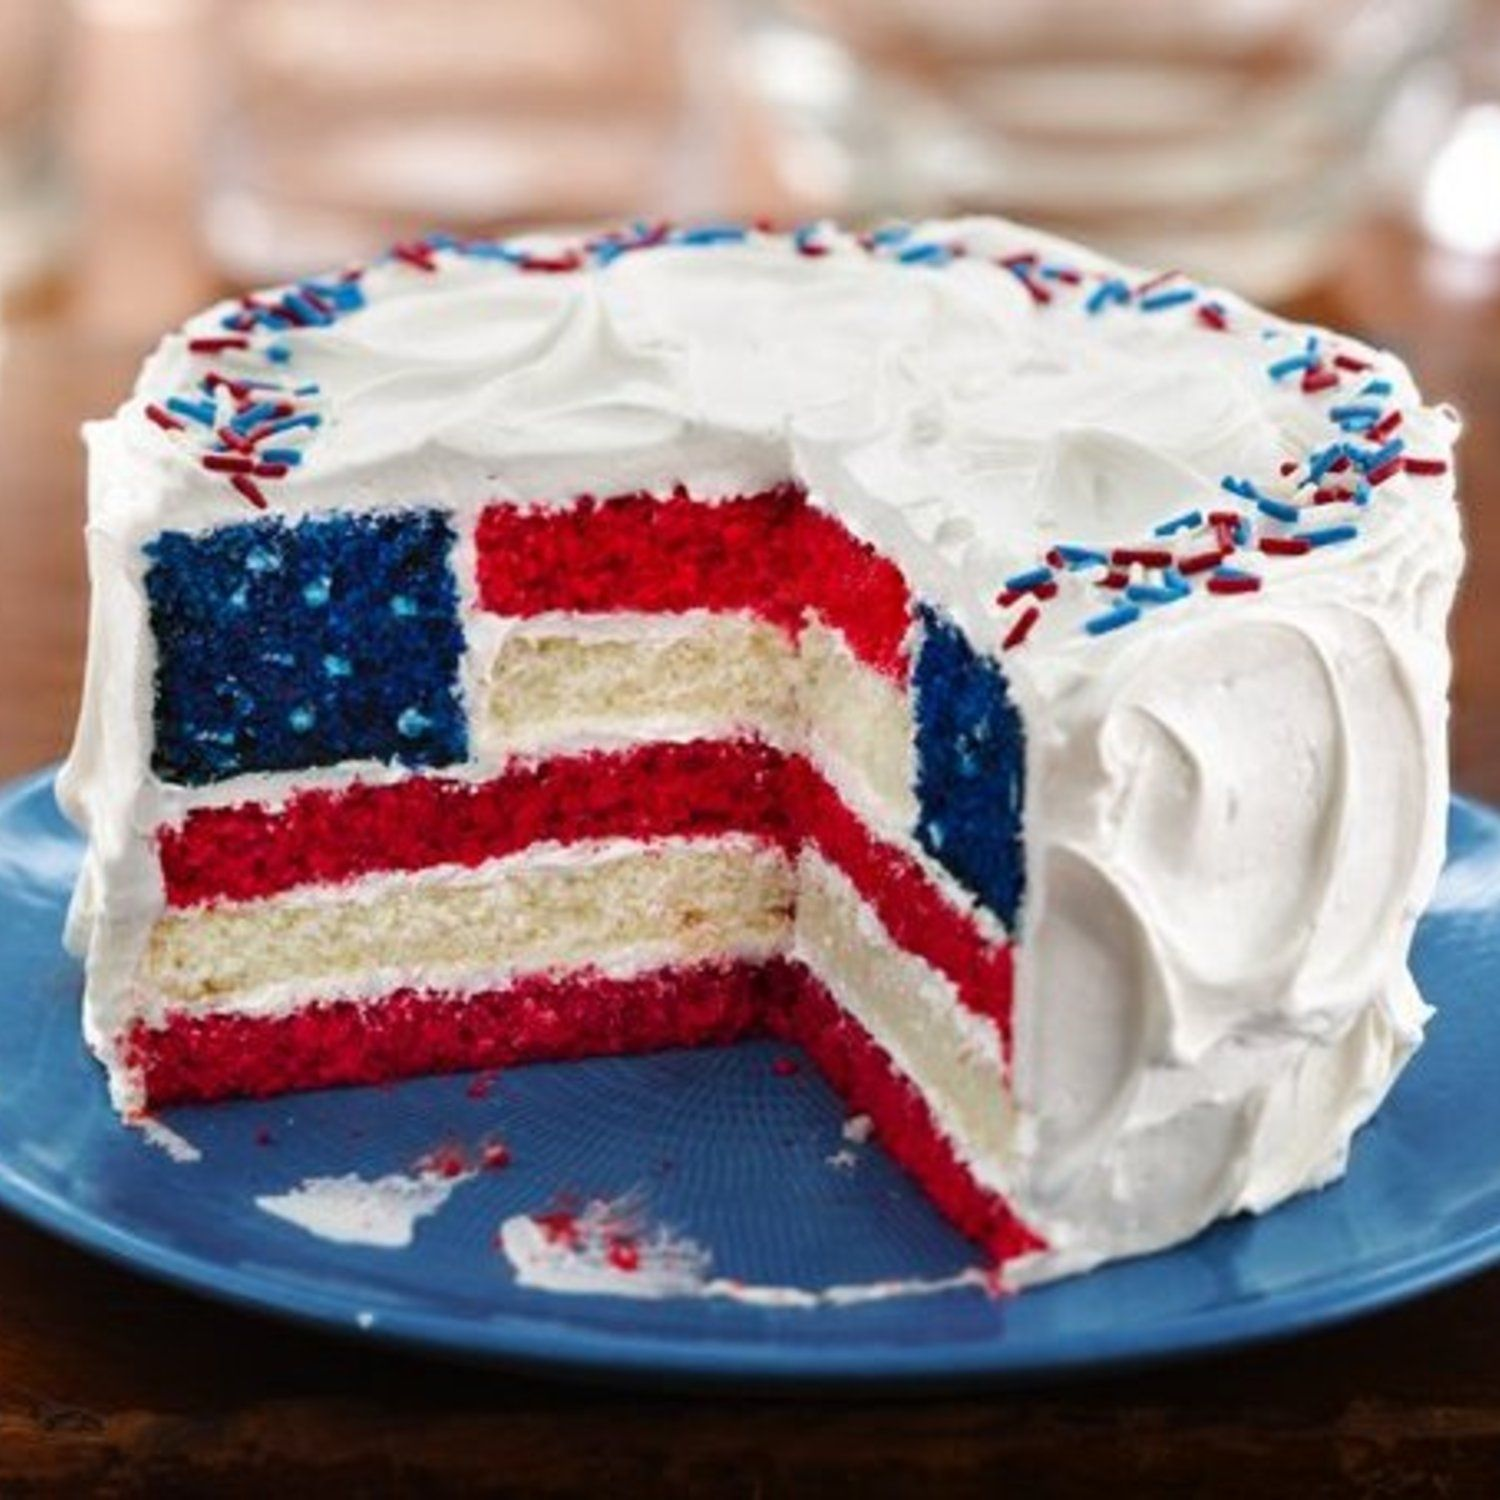 Labor Day Flag Cake Flag On Inside Of Cake Through Layering The